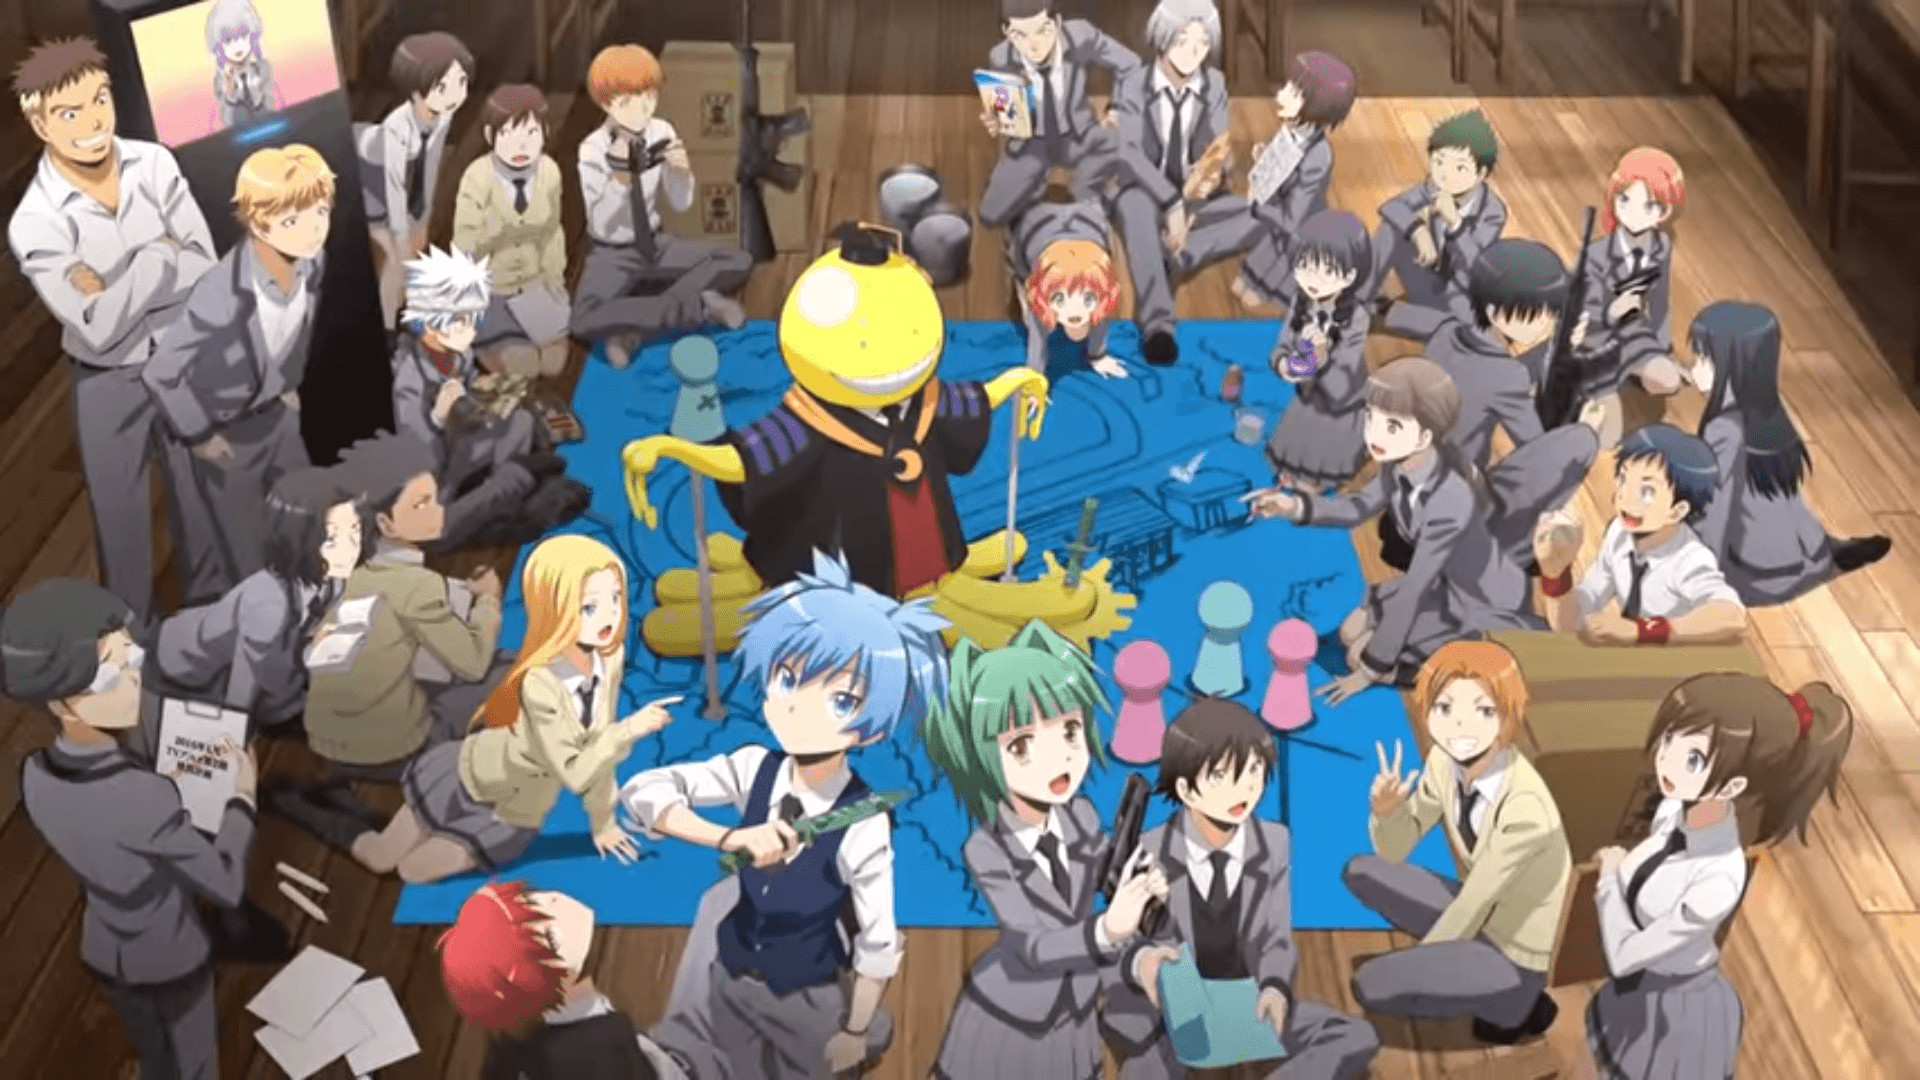 1920x1080 assassination classroom wallpaper - Google Search | ansatsu .